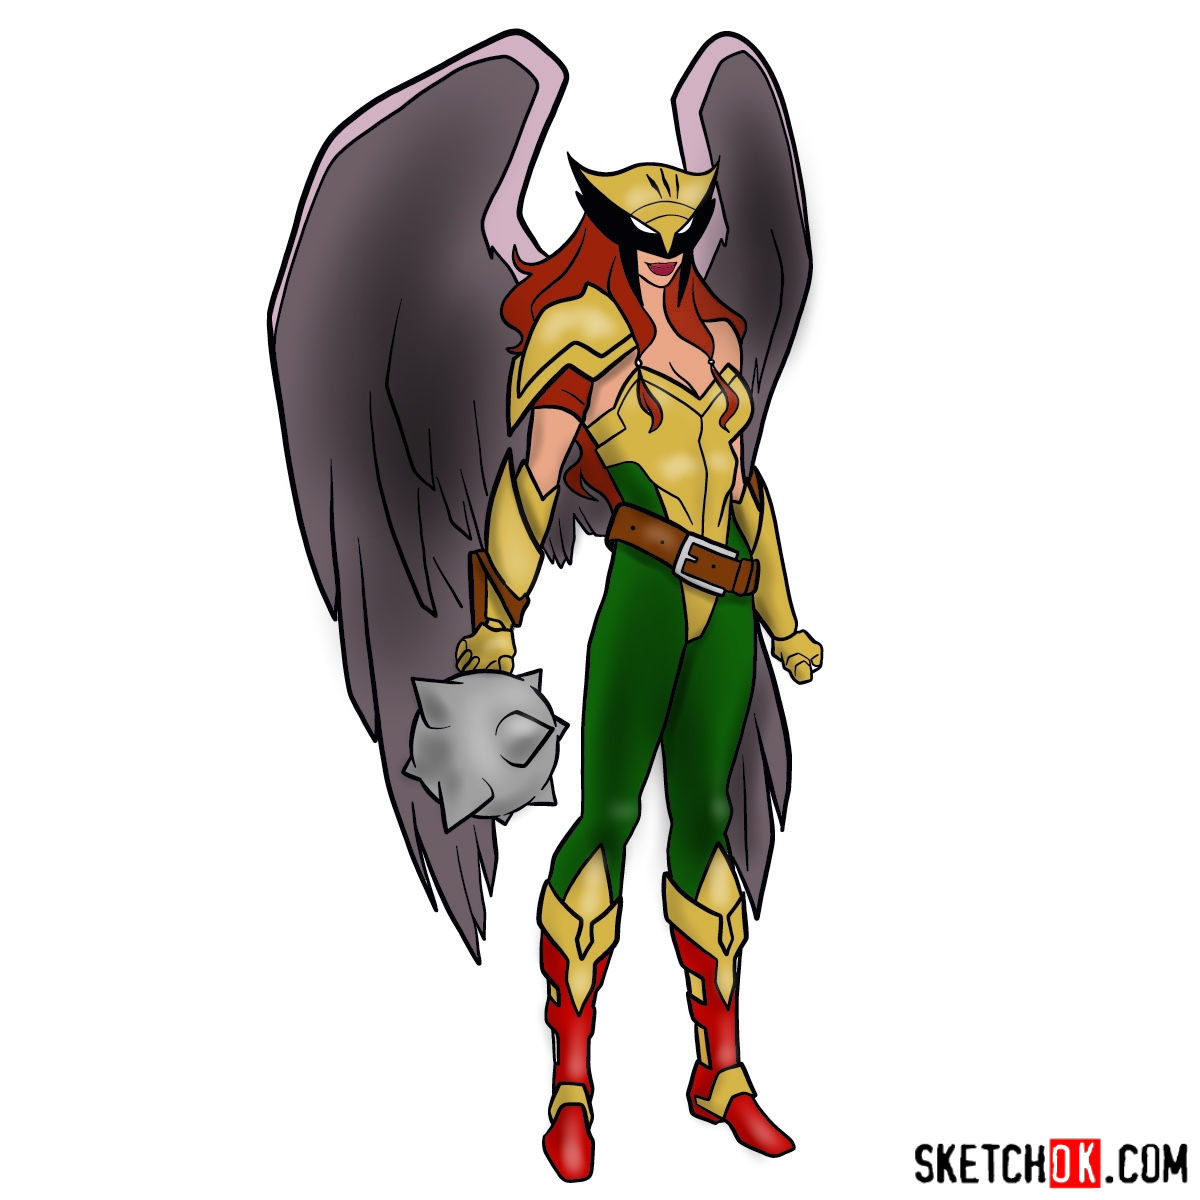 Hawkgirl: How To Draw Hawkgirl DC Superheroine